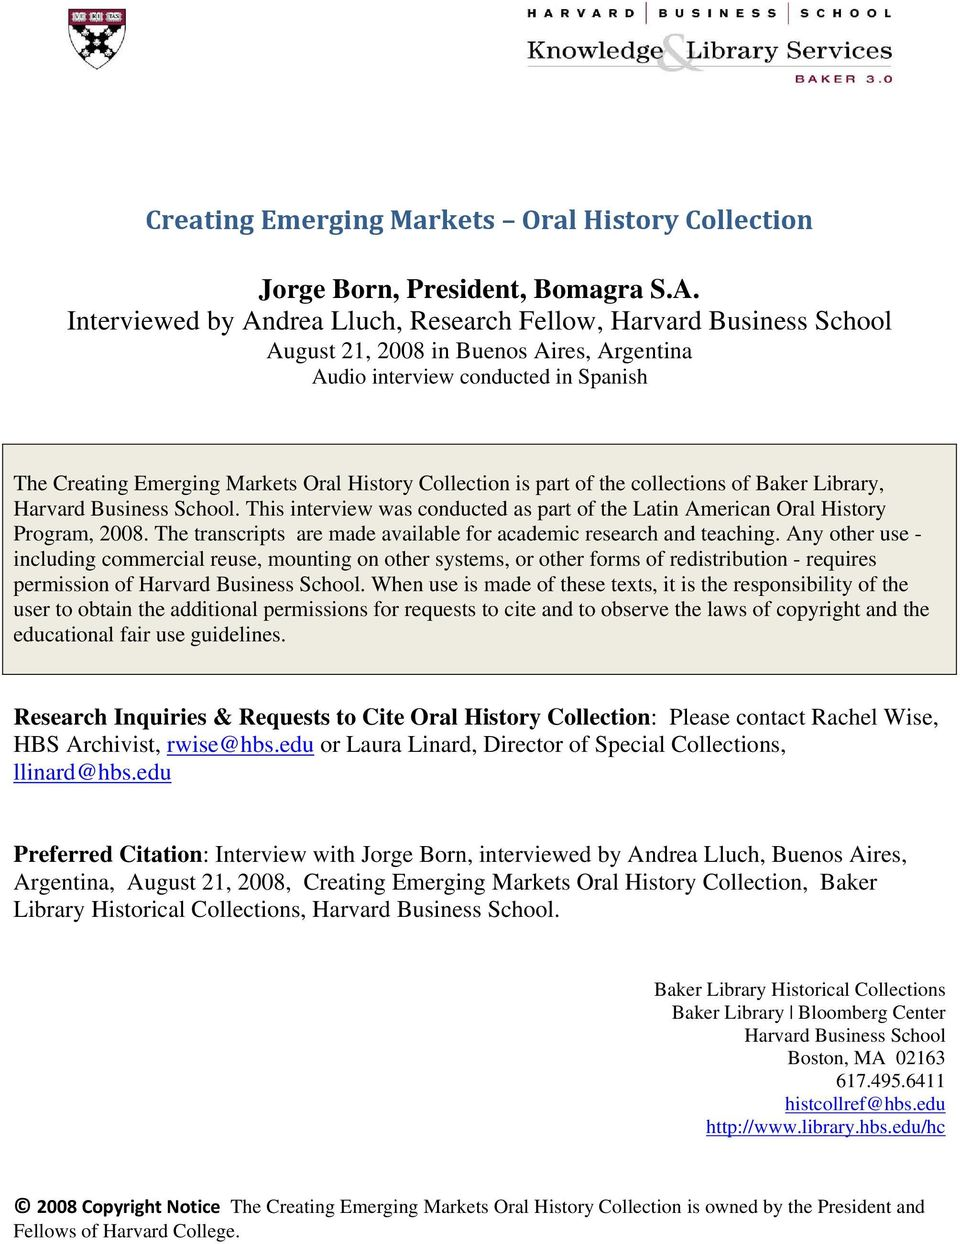 Collection is part of the collections of Baker Library, Harvard Business School. This interview was conducted as part of the Latin American Oral History Program, 2008.